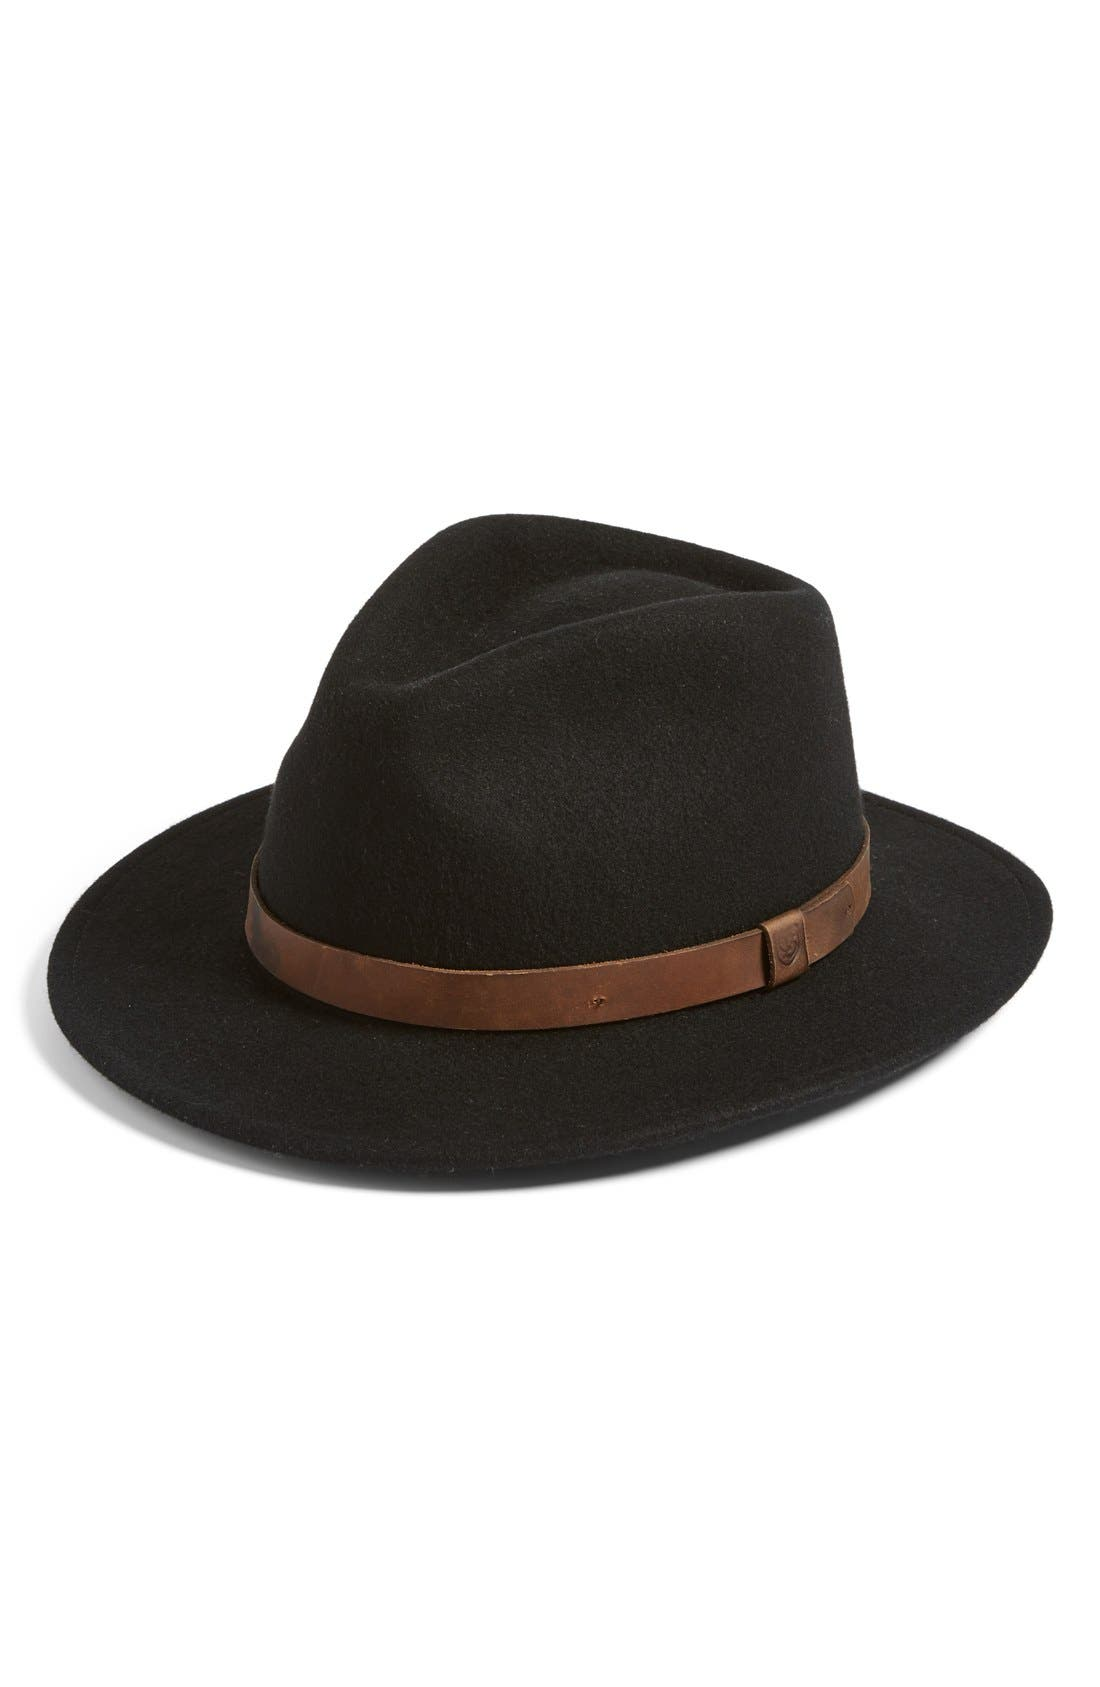 fedora men Fedora hats are our speciality shop our growing variety of fedora styles for both men and women at remarkably low prices.